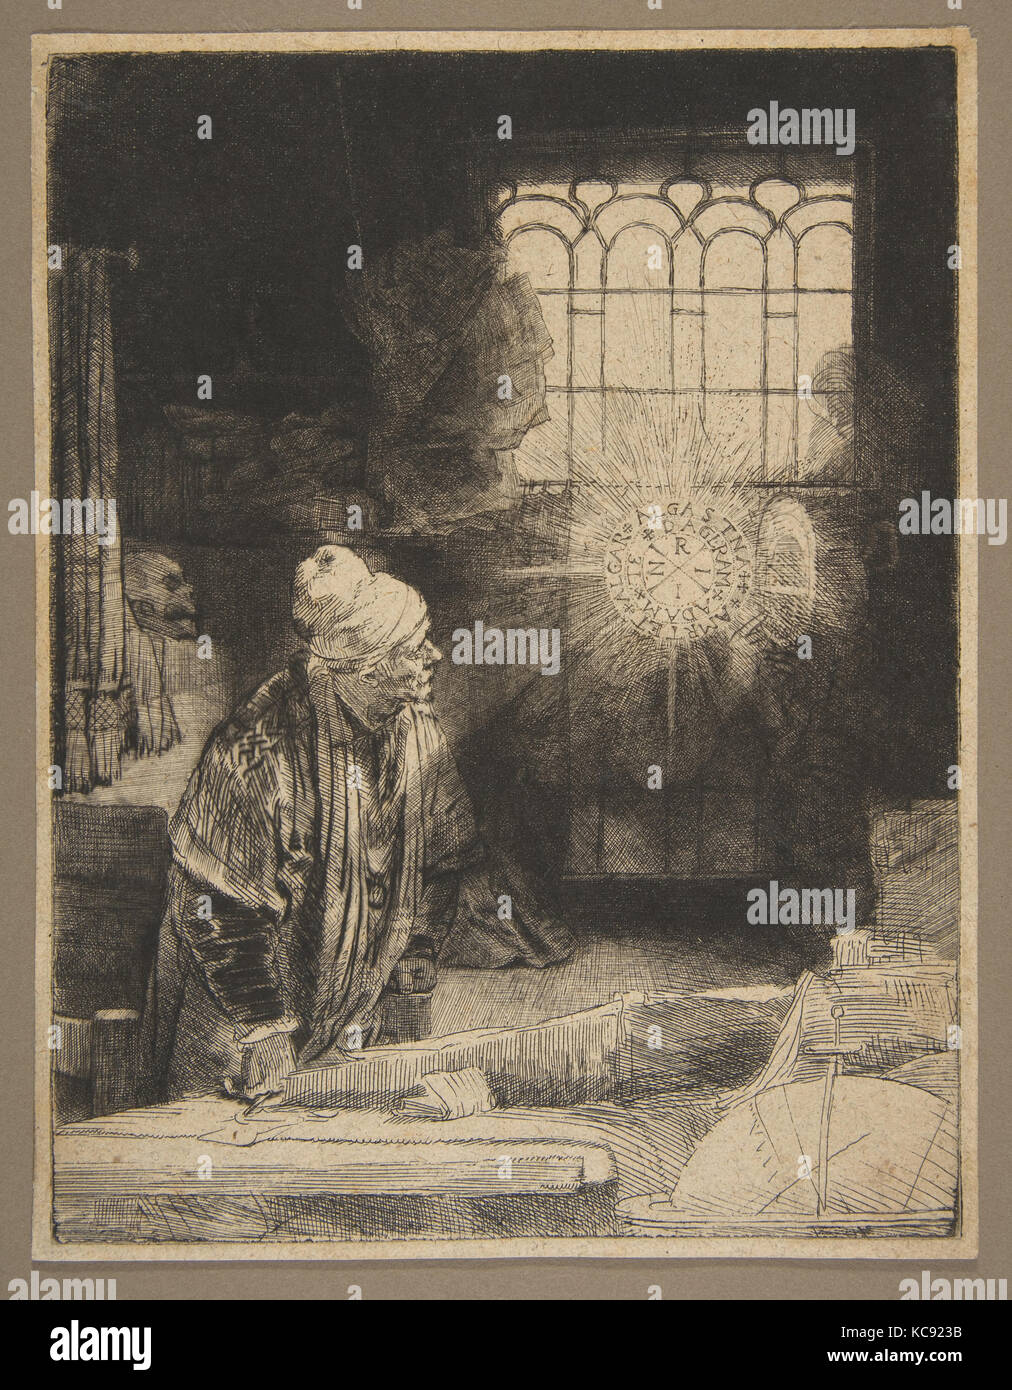 Faust, ca. 1652, Etching, drypoint, and engraving; first state of three, Prints, Rembrandt (Rembrandt van Rijn) - Stock Image